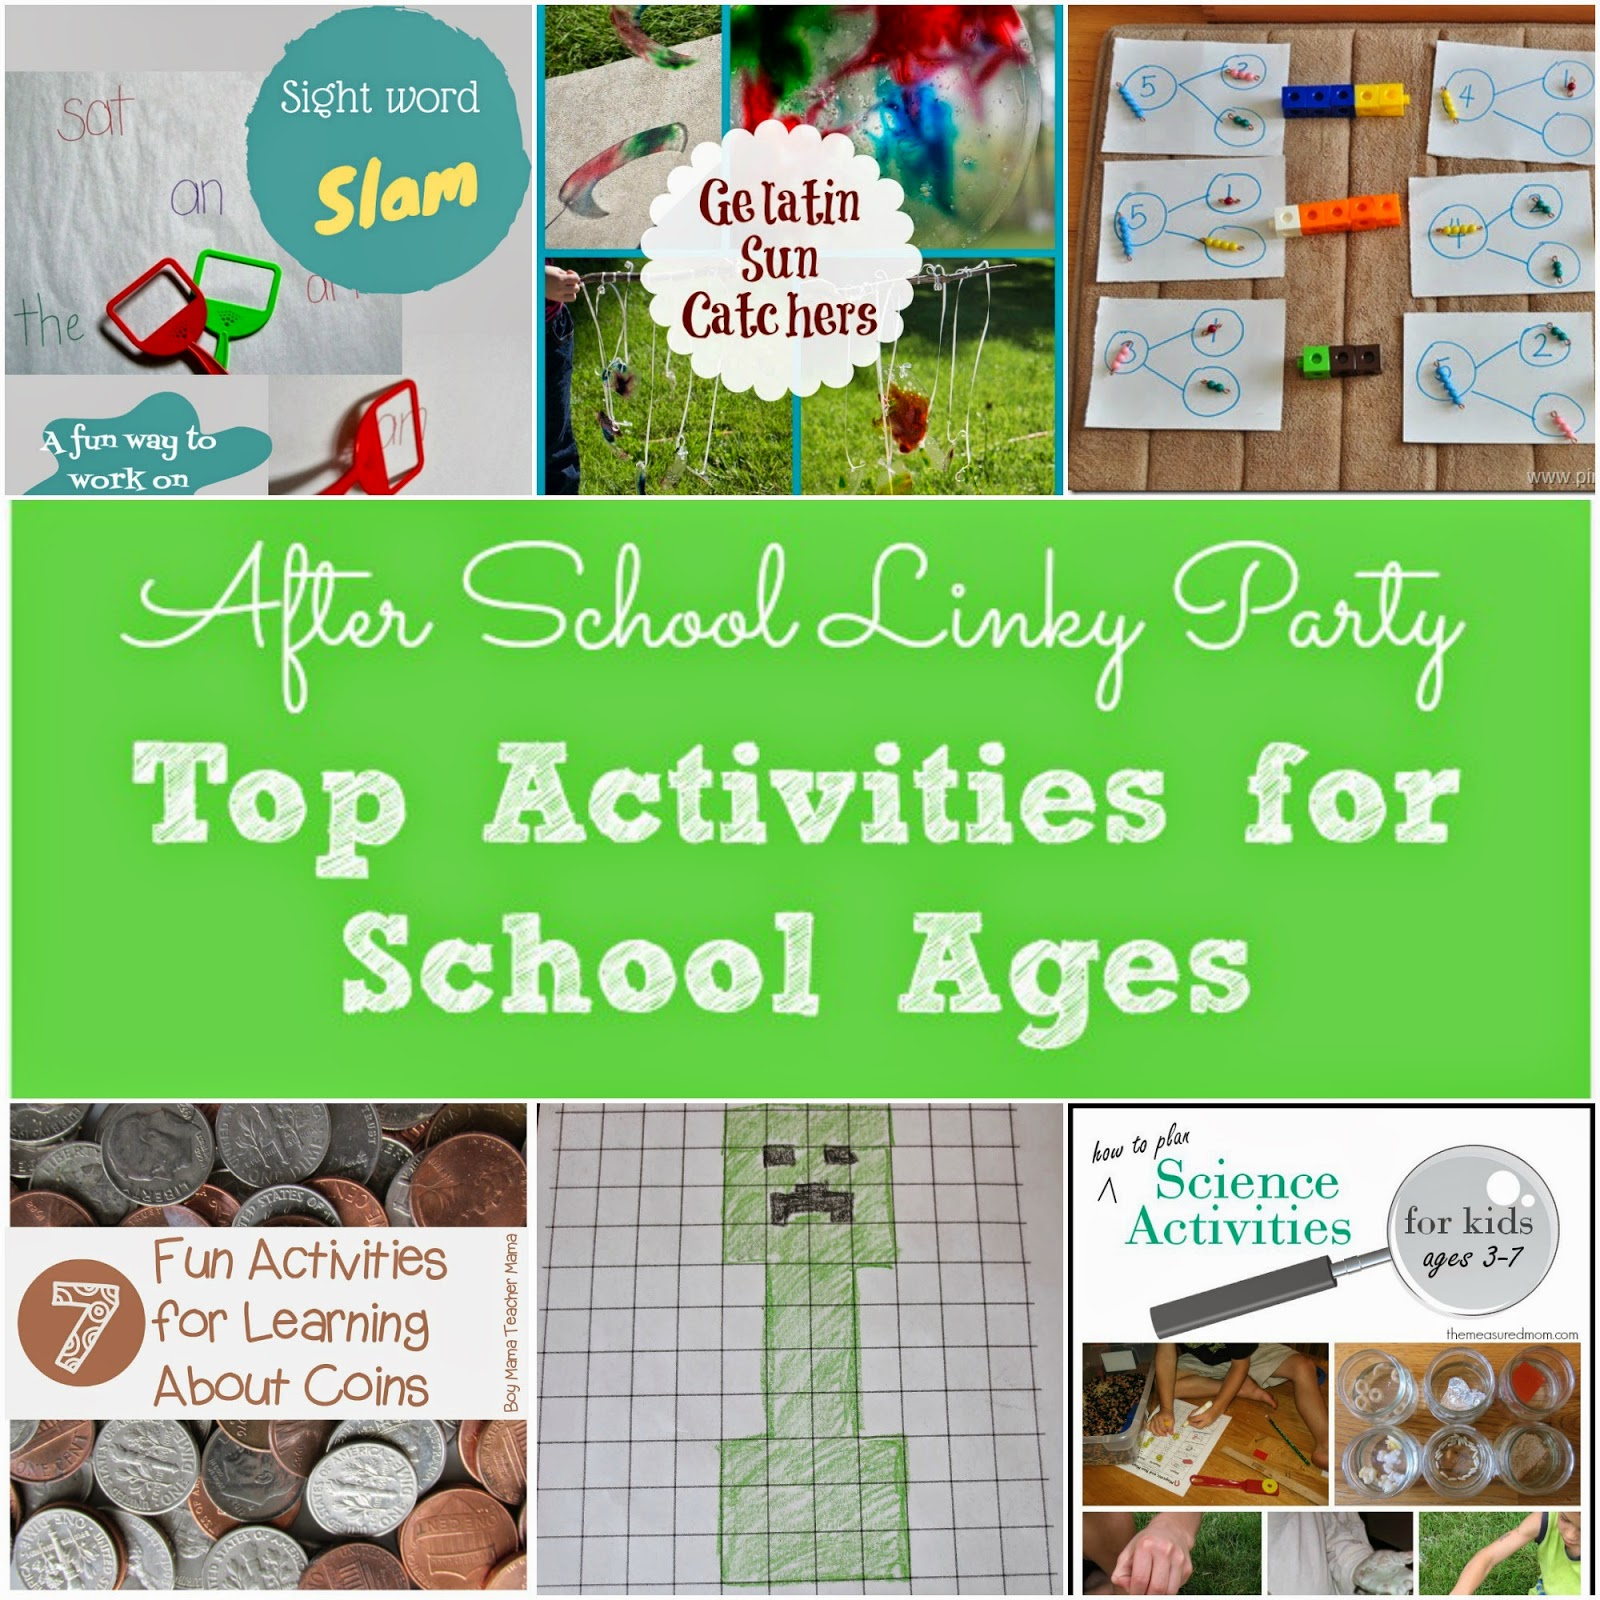 Top Activities for School Ages featured at the After School Linky Party